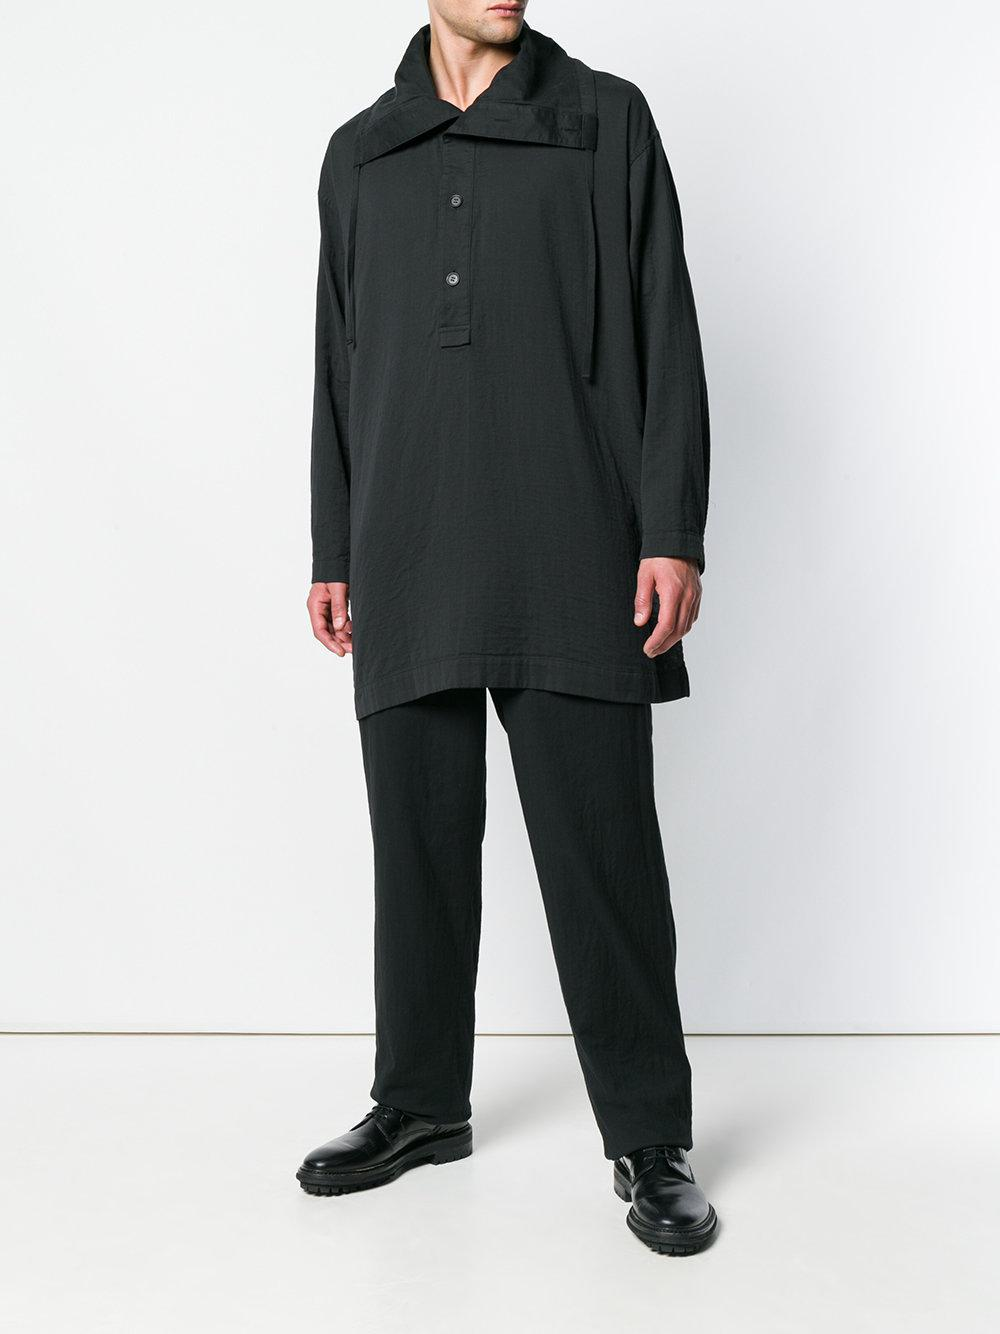 Issey Miyake Cotton High-waist Straight Leg Trousers in Black for Men